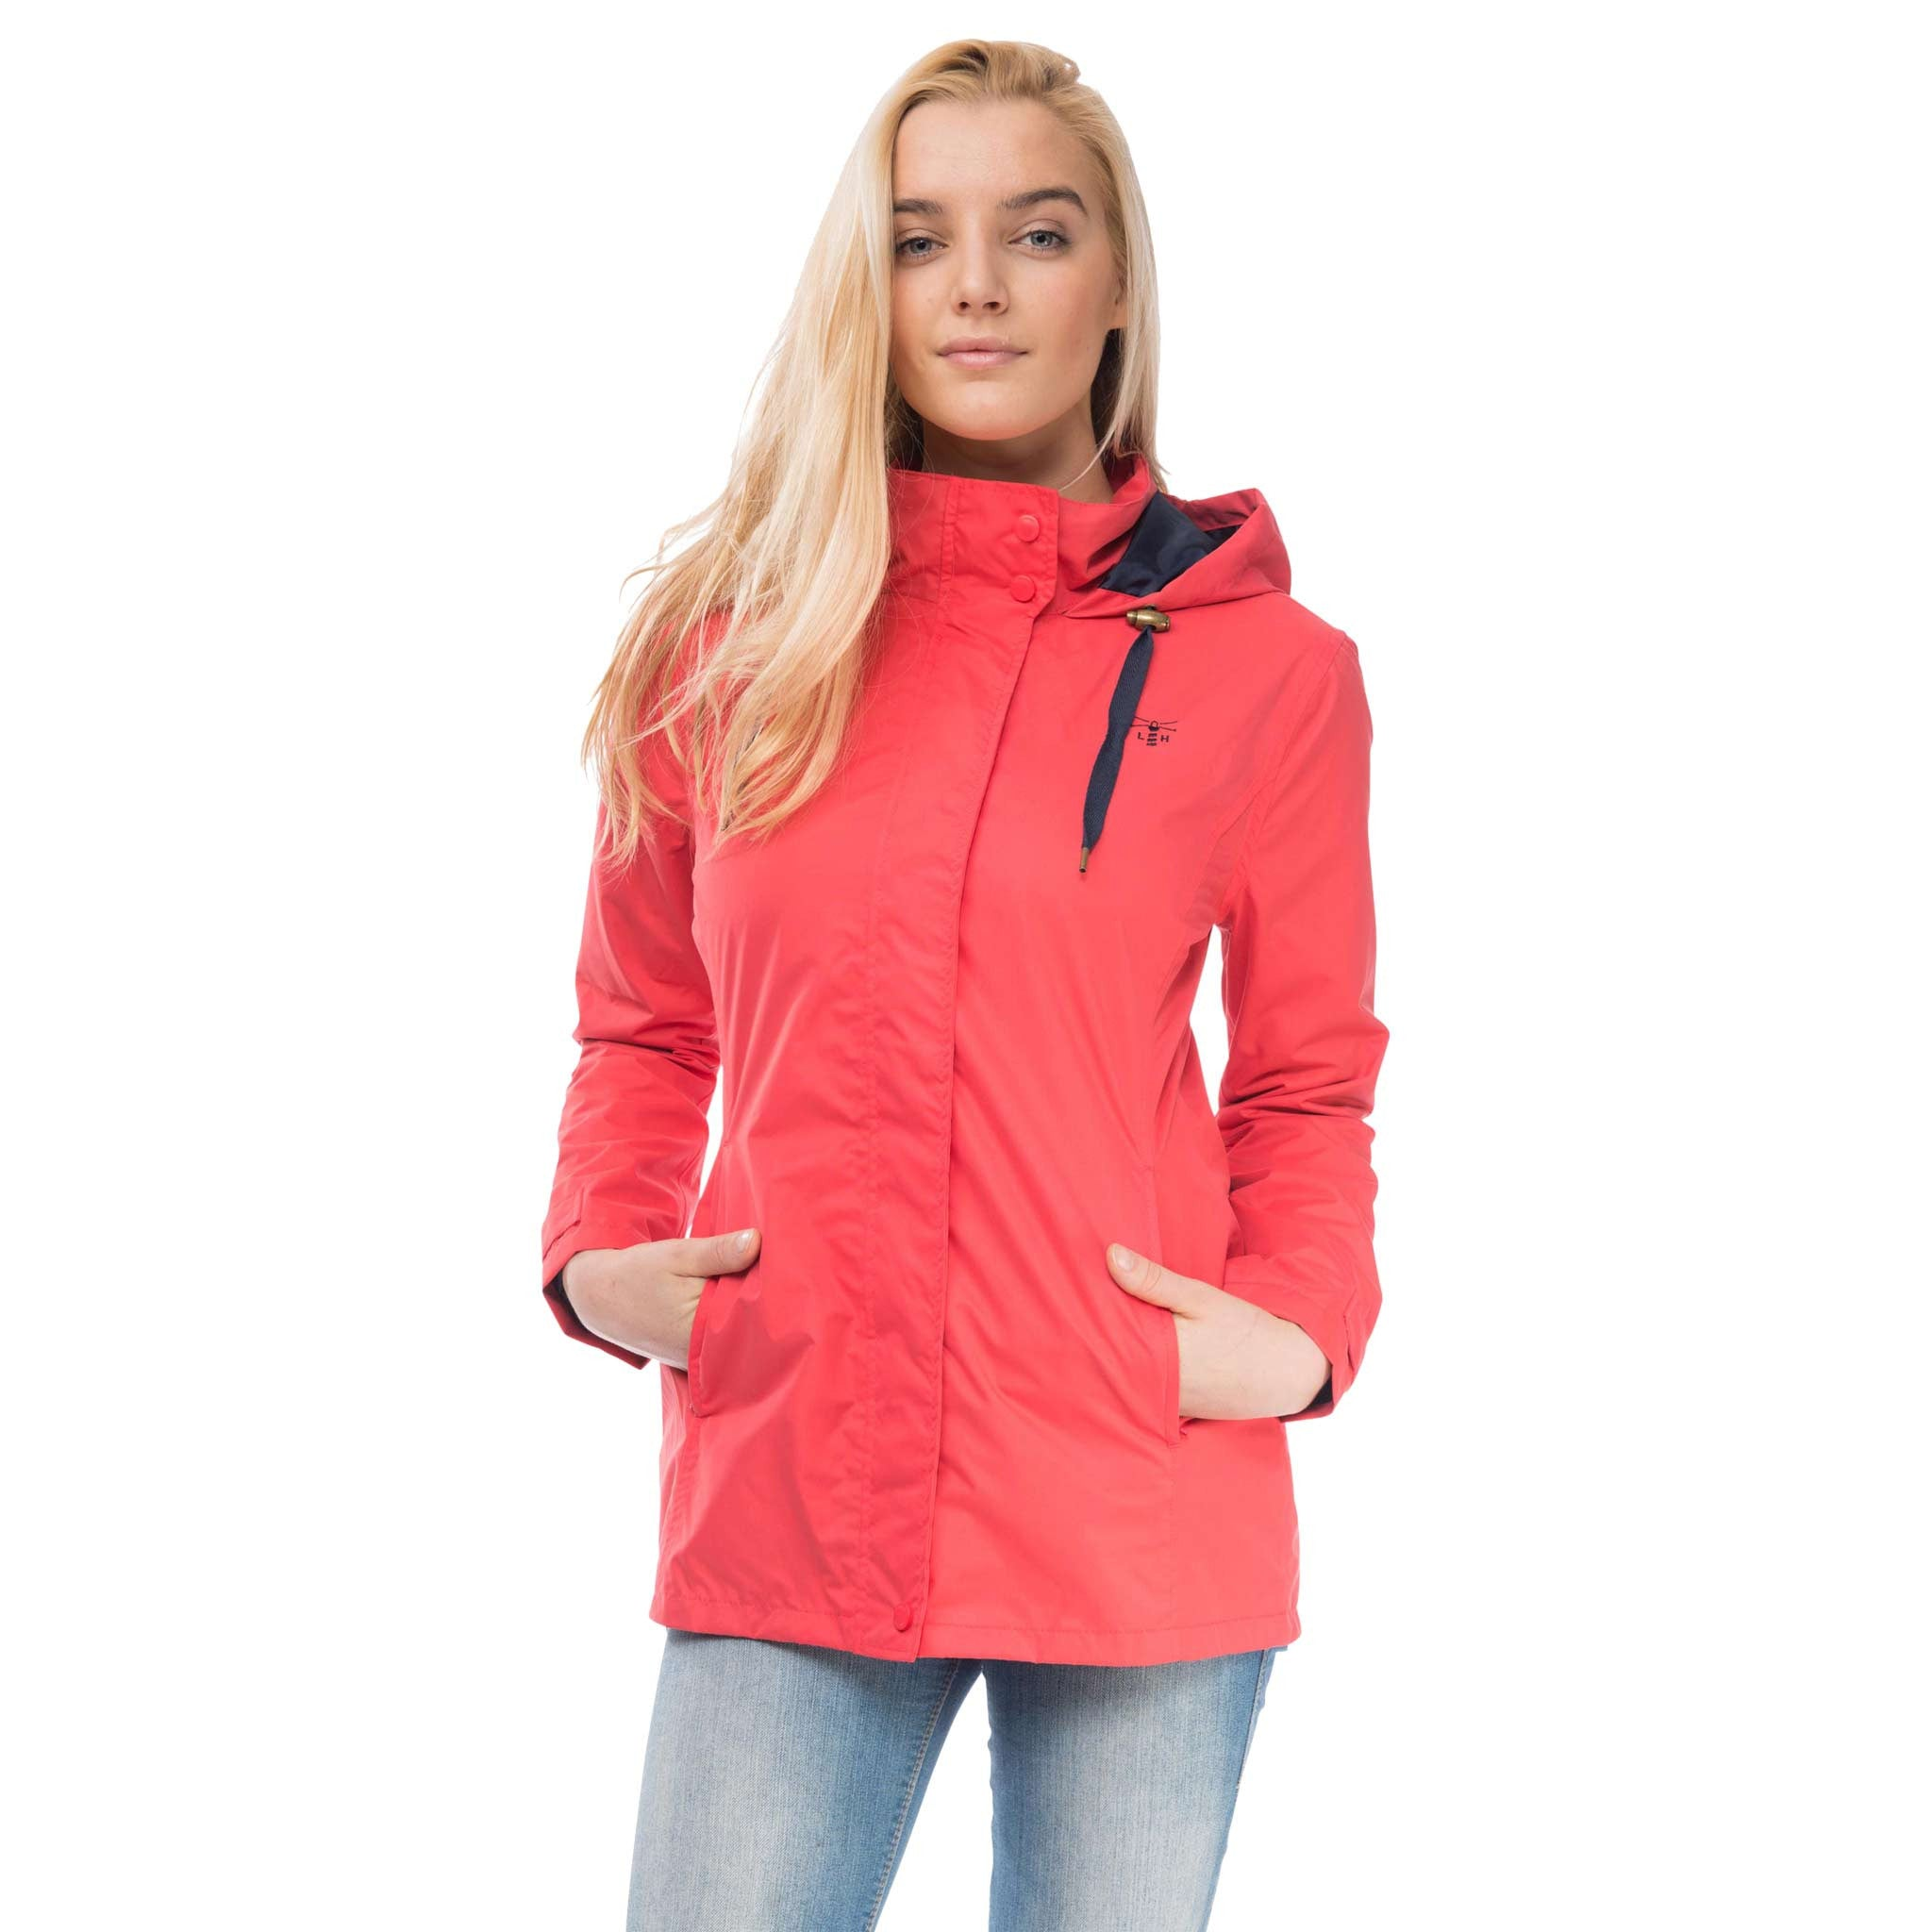 Beachcomber Waterproof Hooded Jacket in Watermelon Red, Modelled Front View | Lighthouse